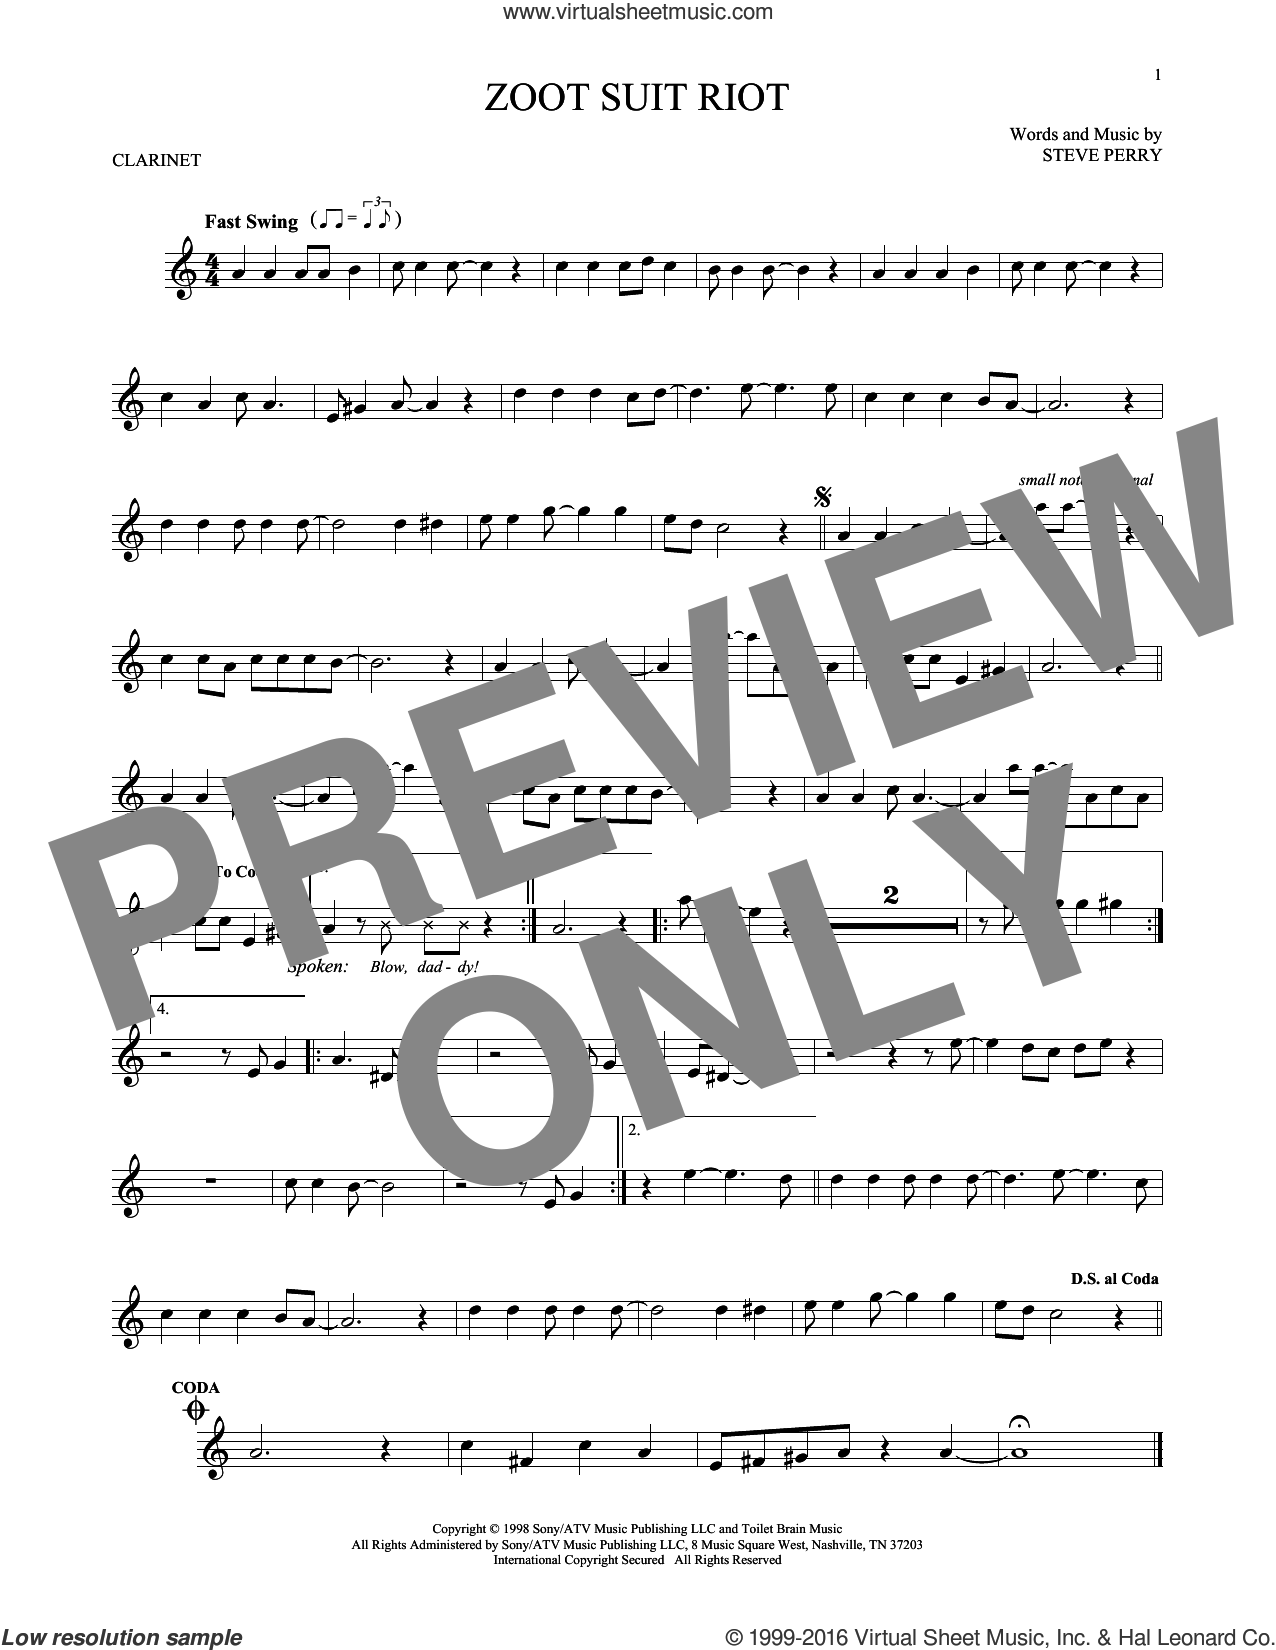 Zoot Suit Riot sheet music for clarinet solo by Cherry Poppin' Daddies and Steve Perry, intermediate skill level